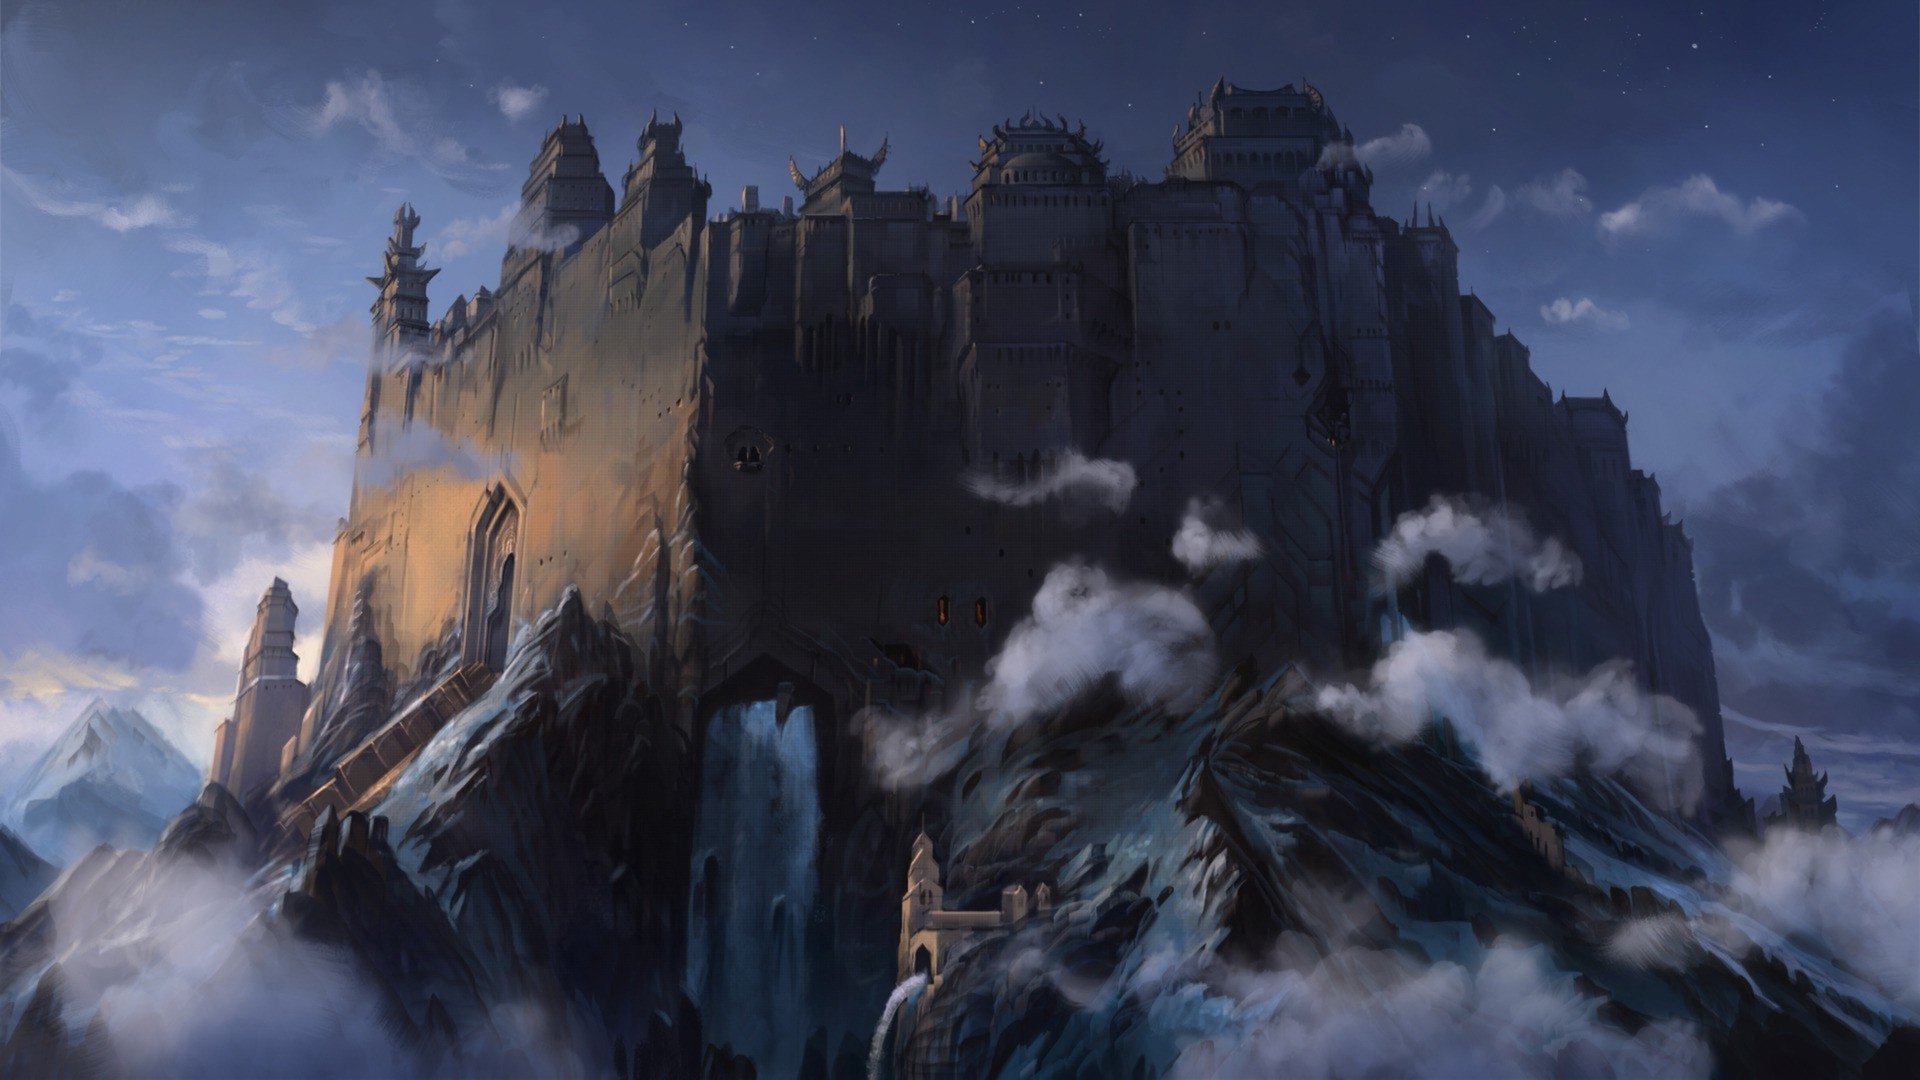 Res: 1920x1080, fantasy Art, Artwork, Clouds, Mountain, Forts, Castle Wallpapers HD /  Desktop and Mobile Backgrounds